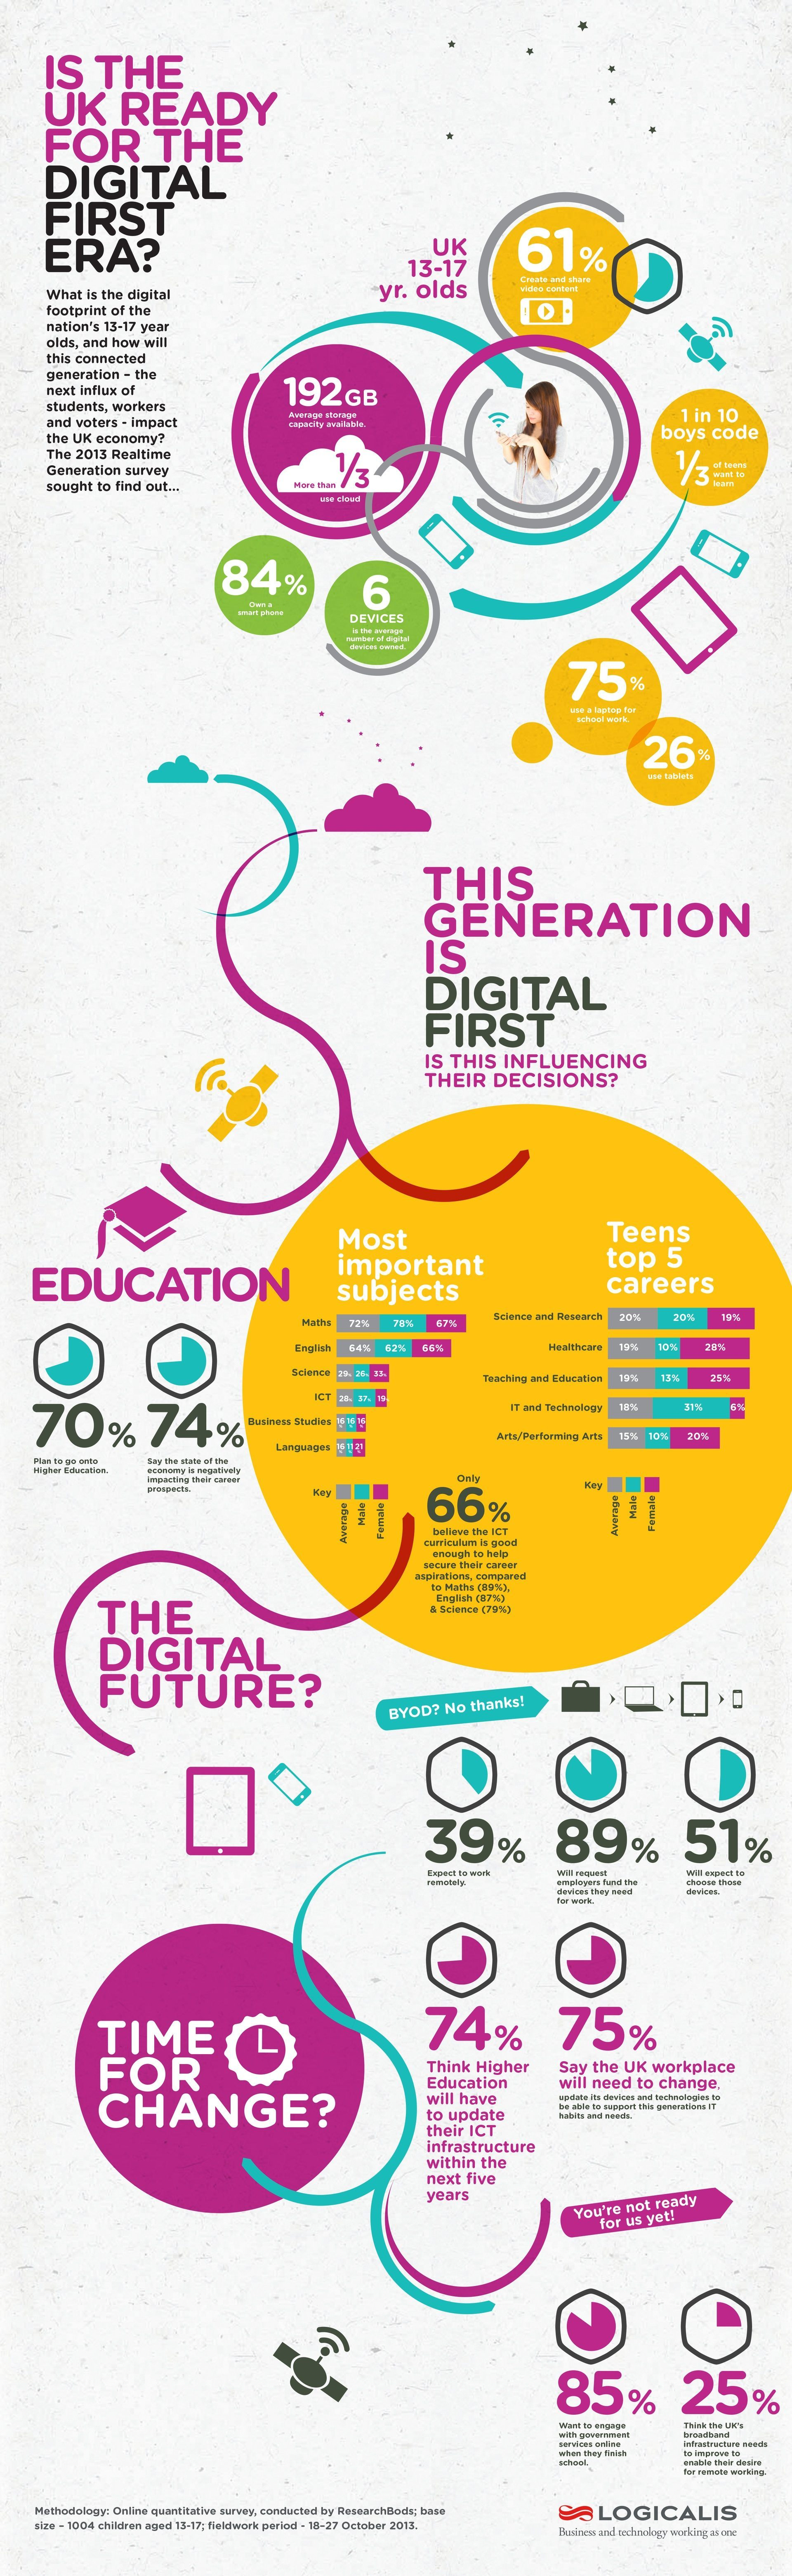 The Realtime Generation Infographic - Are you ready for the digital first era?